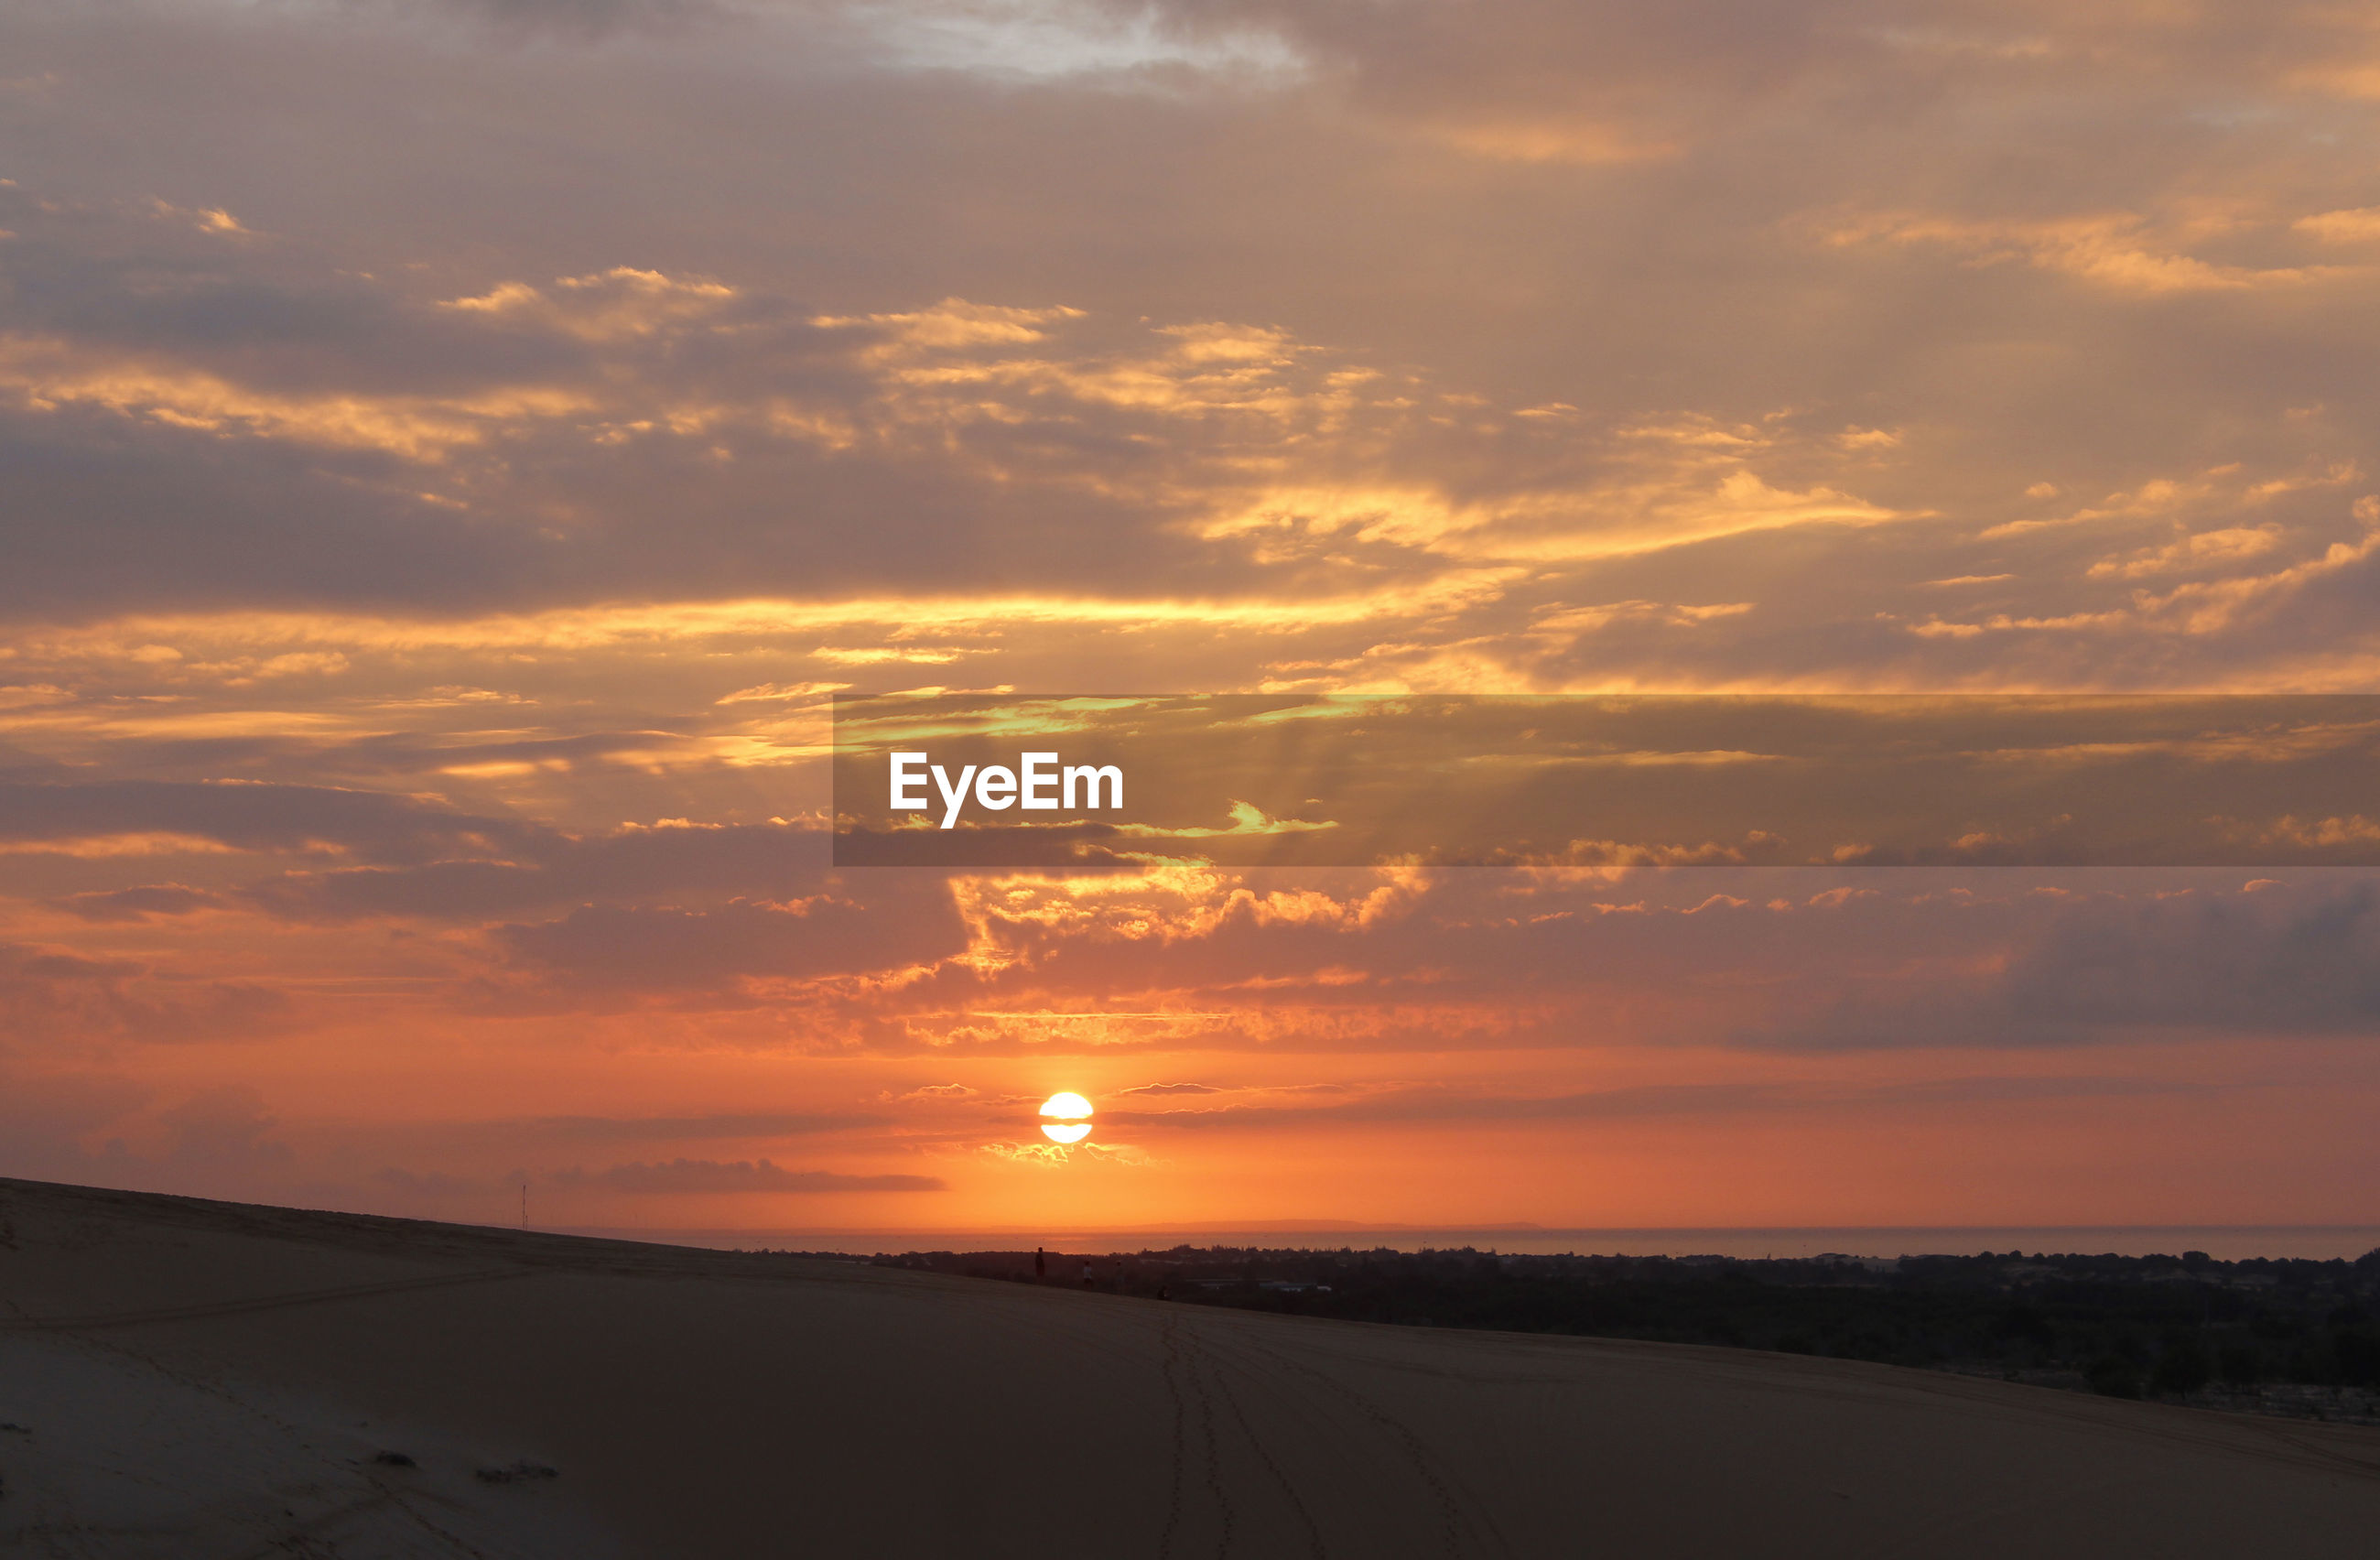 SCENIC VIEW OF SUNSET OVER LANDSCAPE AGAINST SKY